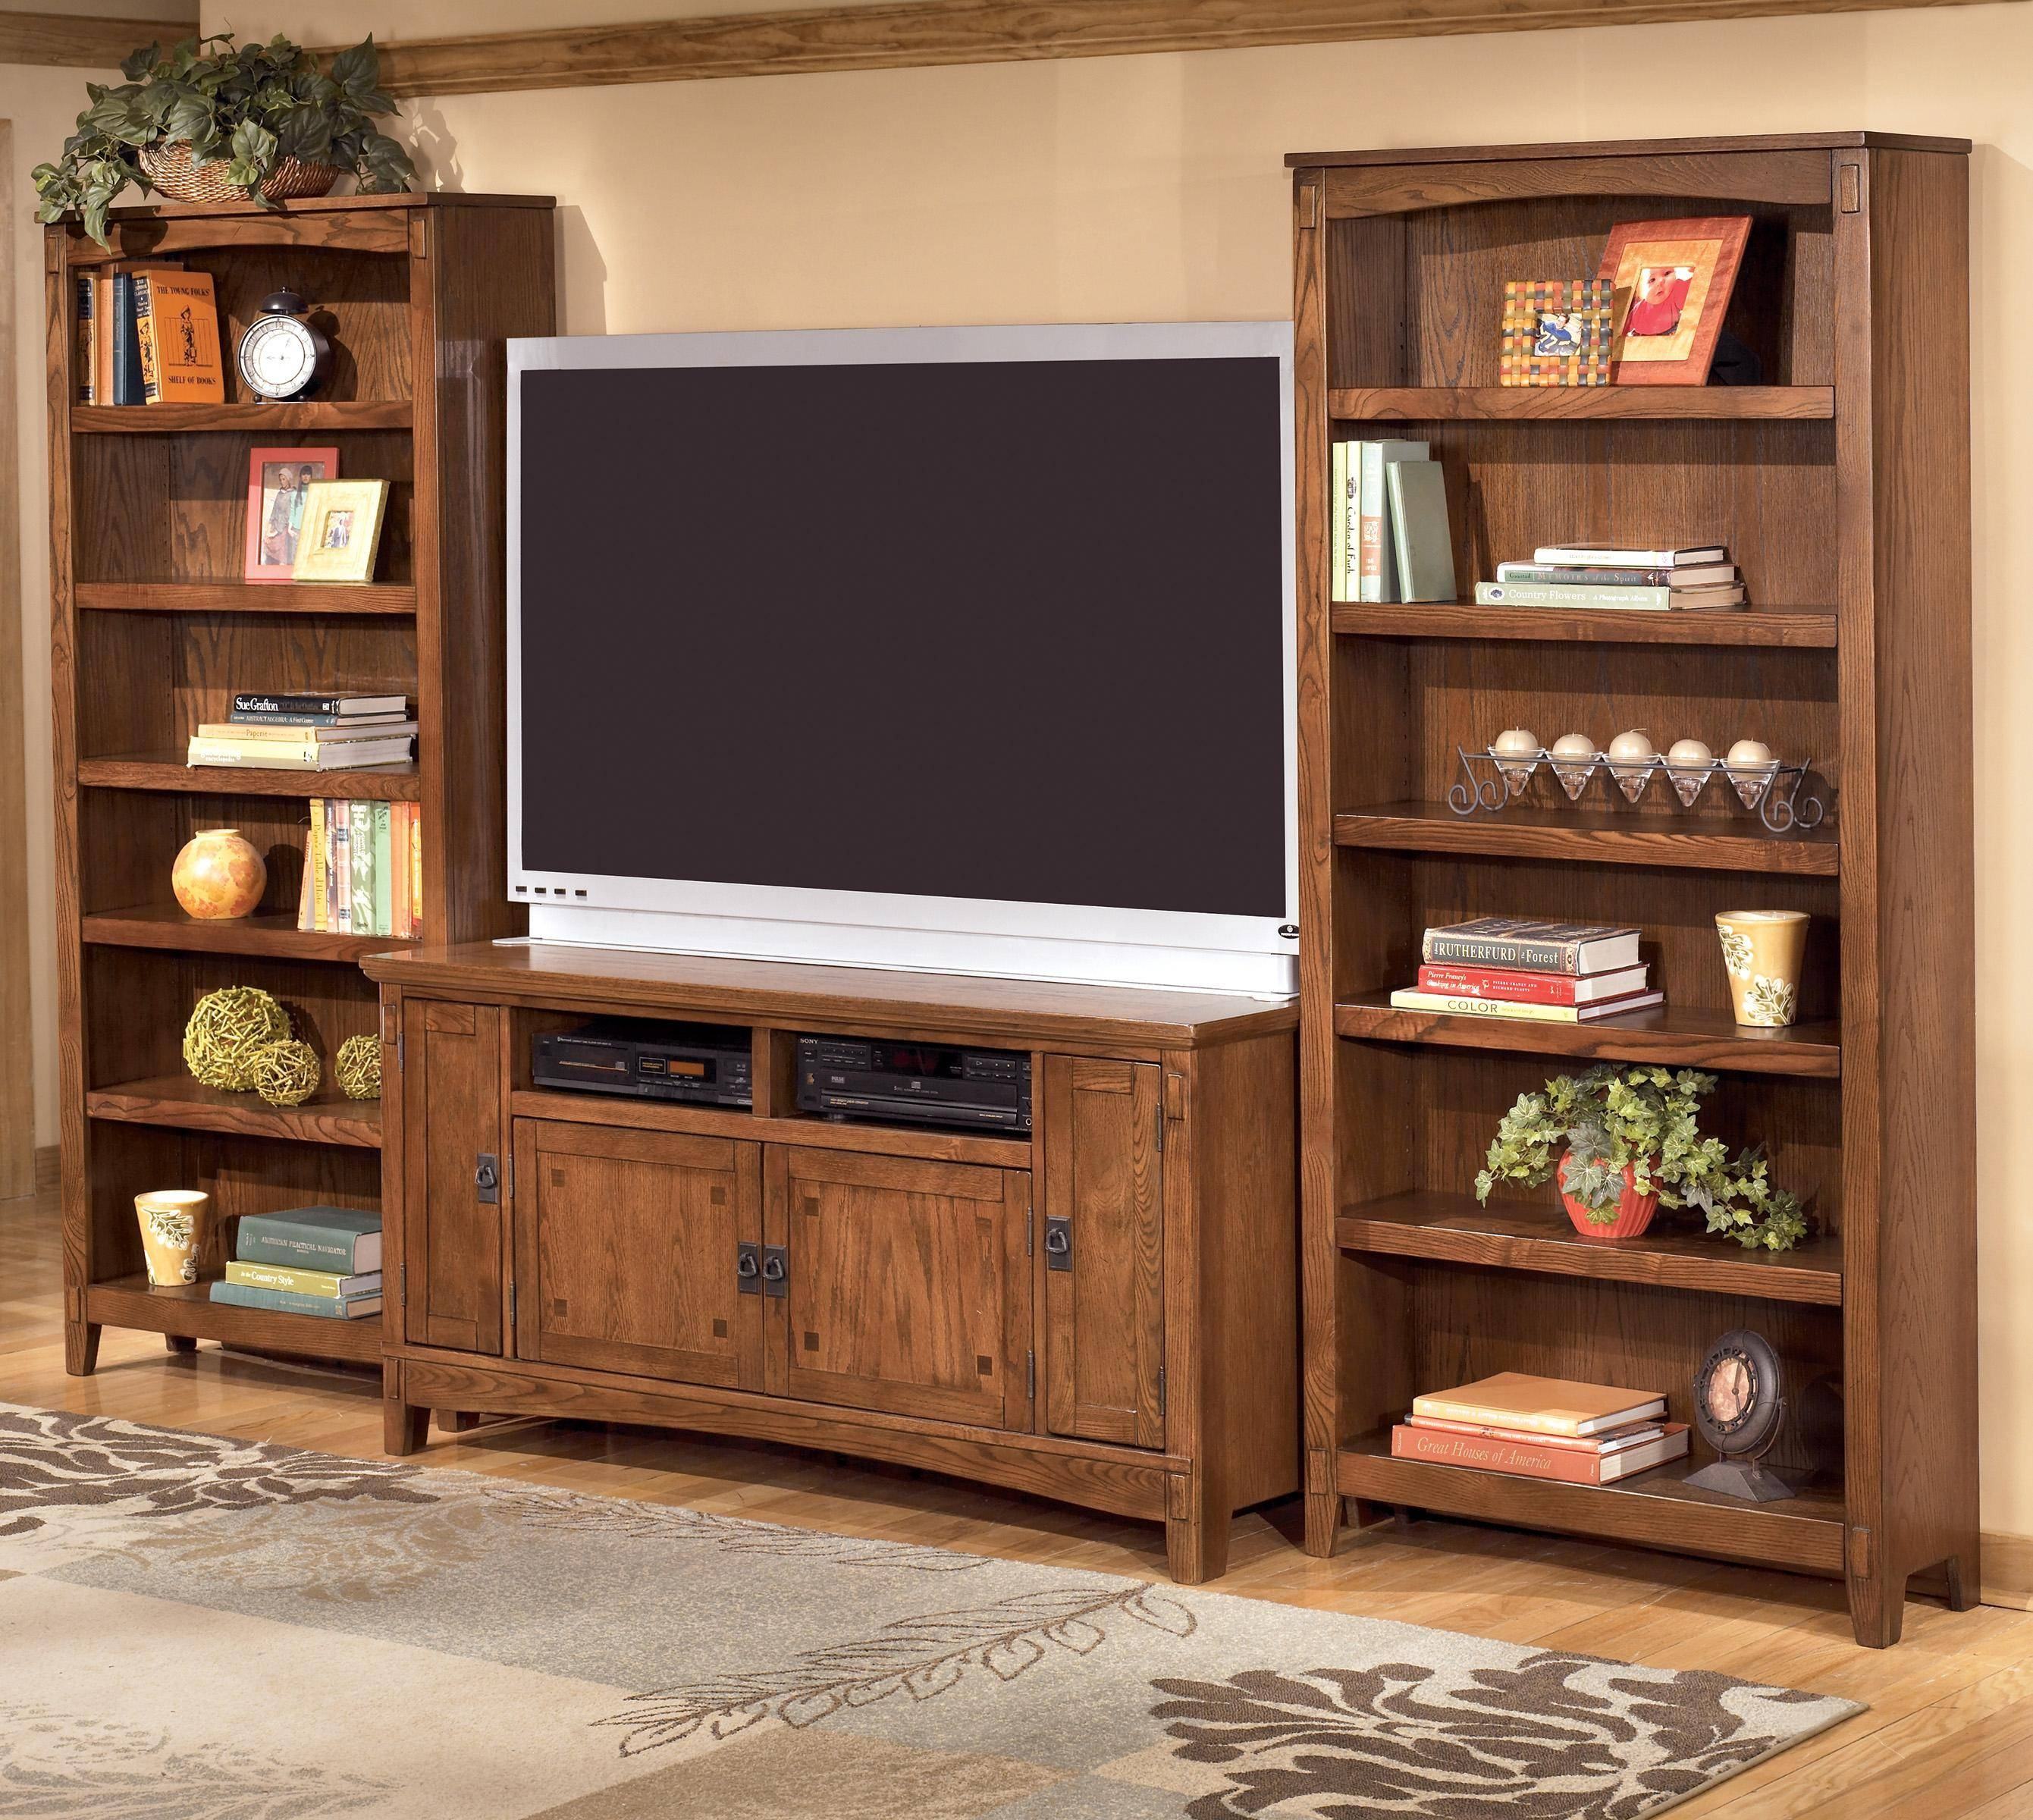 Shop Entertainment Centers | Wolf And Gardiner Wolf Furniture In Tv Hutch  Cabinets (Image 9